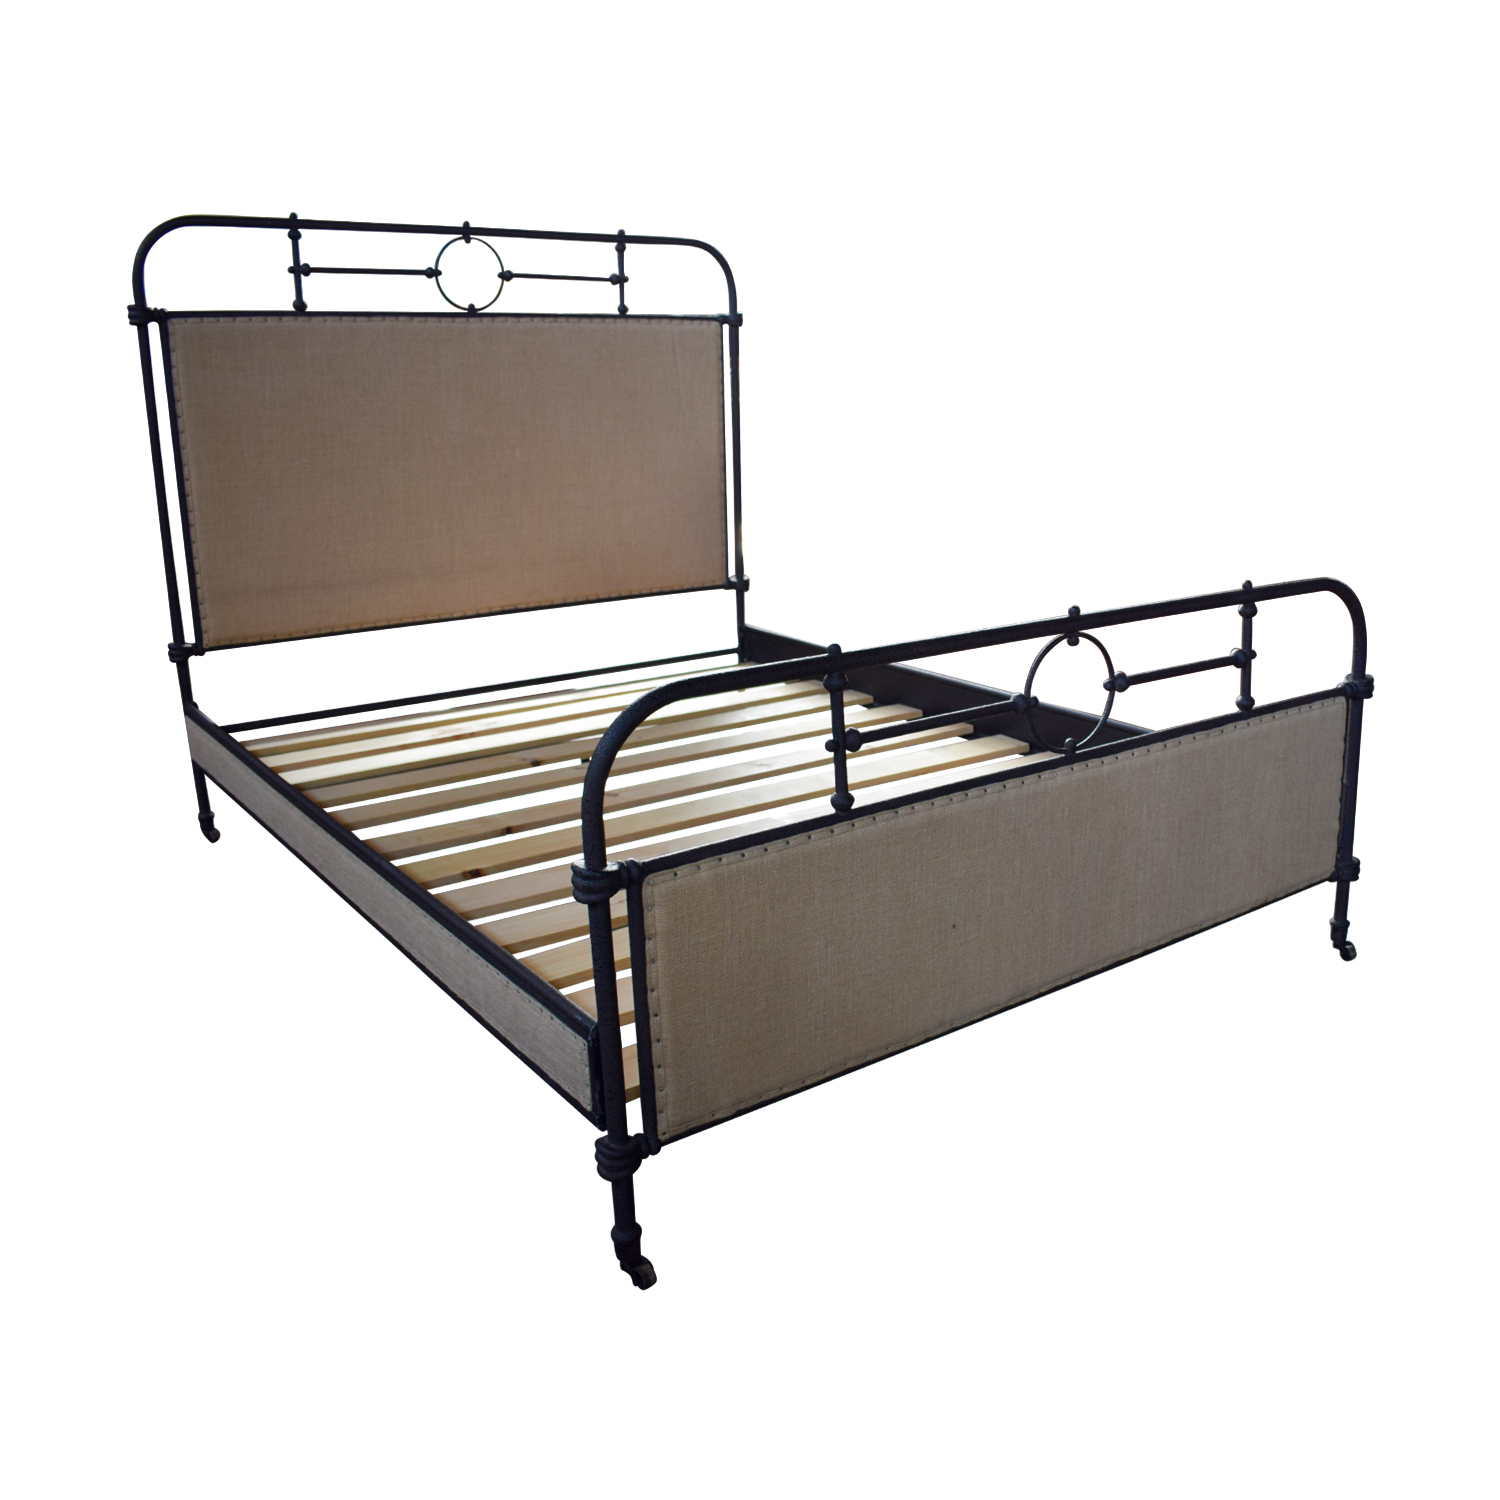 shop ABC Home ABC Home Upholstered Metal Queen Bed online